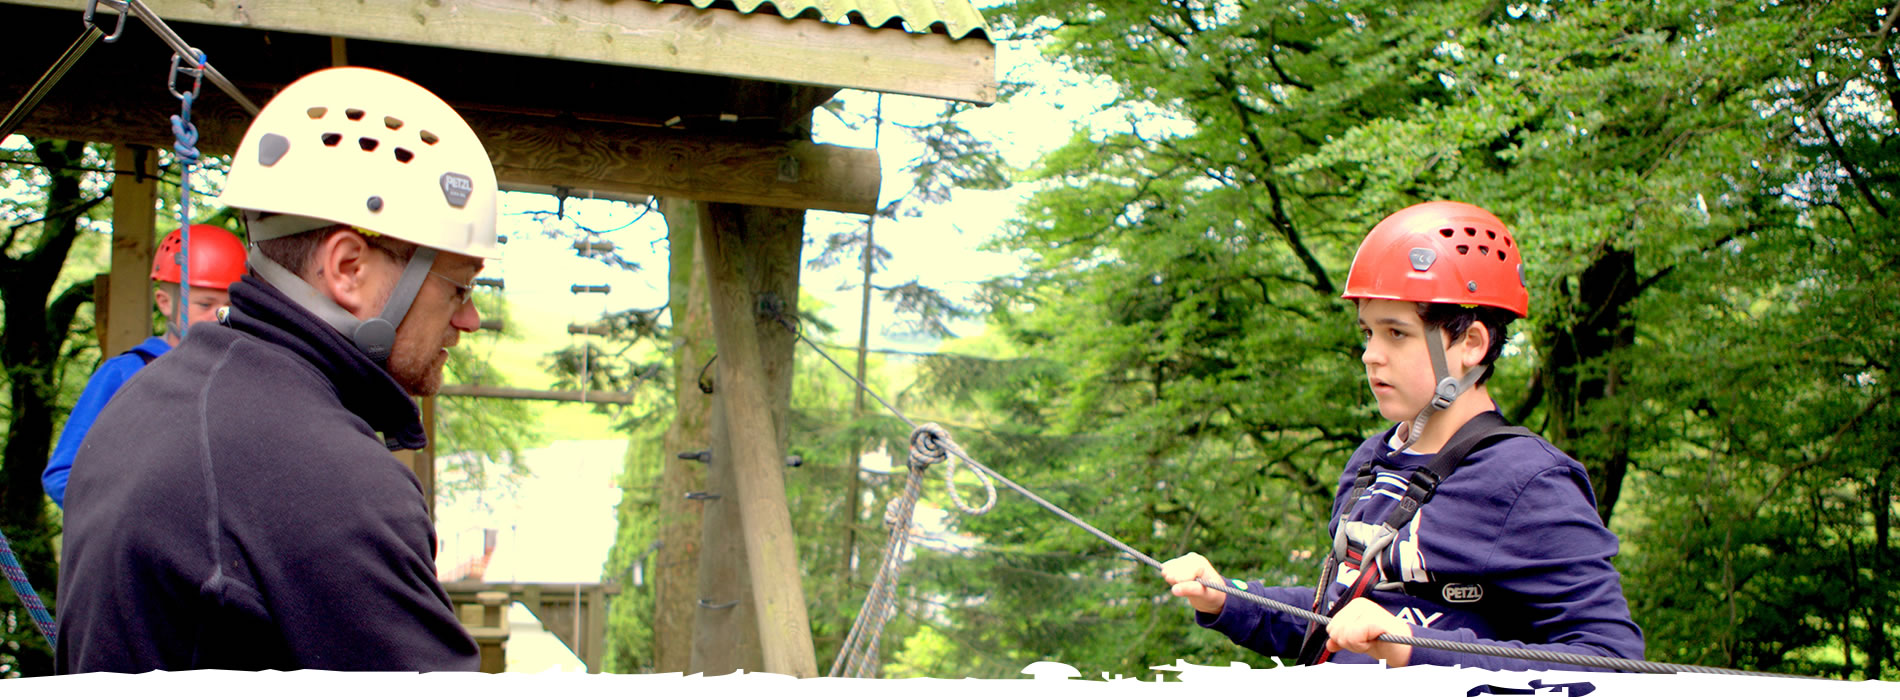 Outdoor Adventure Centre Safety & Insurance